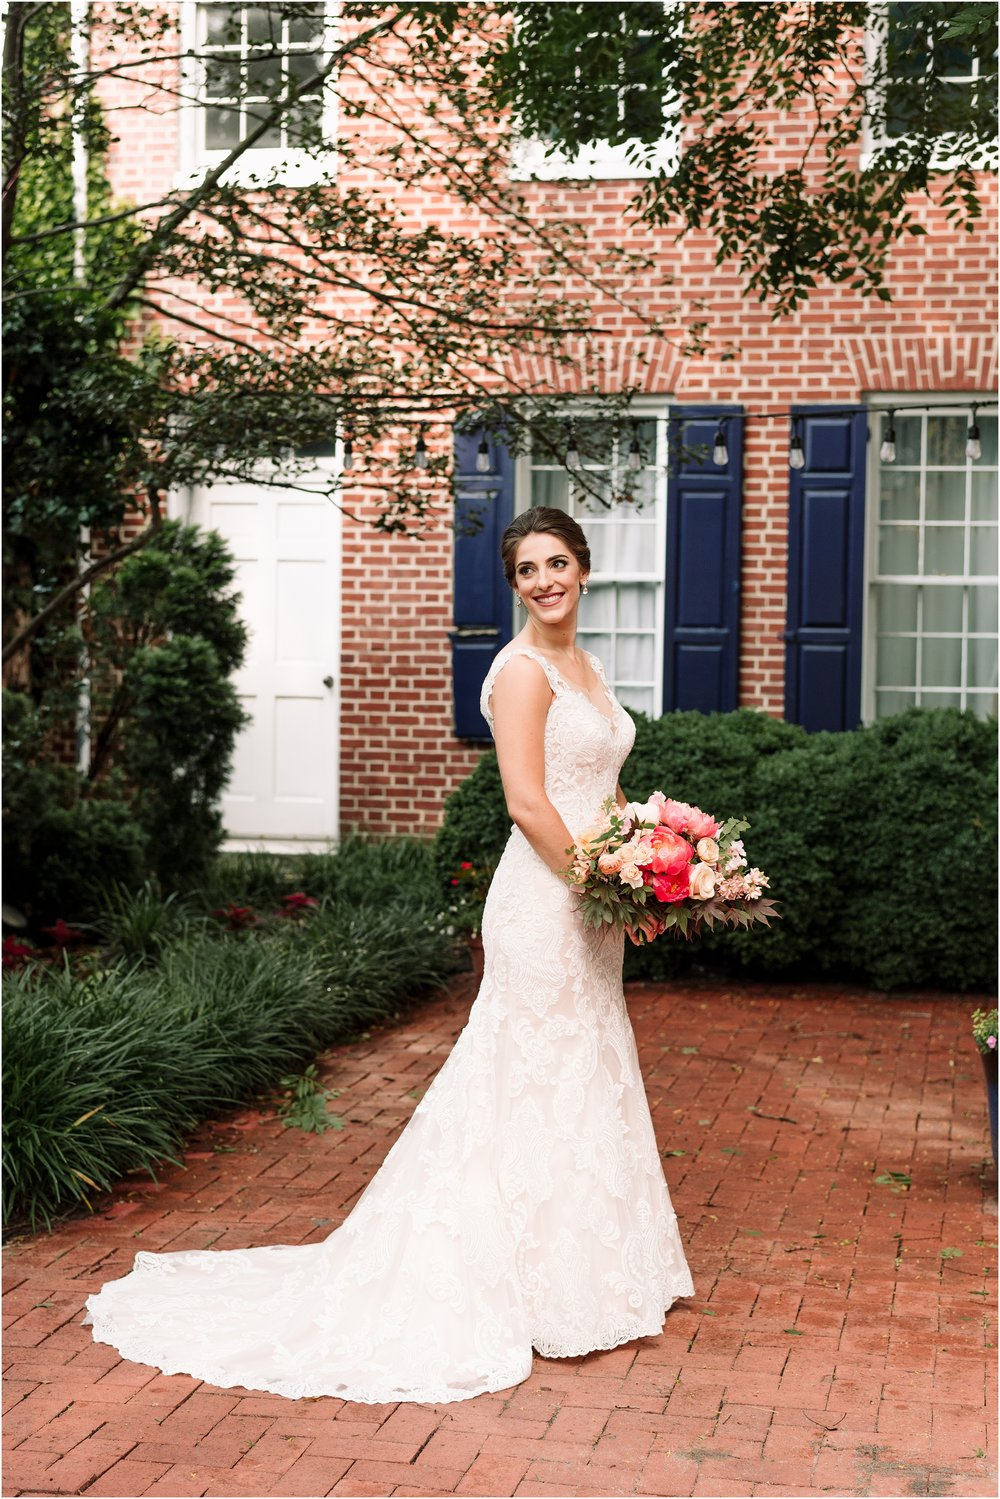 hannah leigh photography 1840s plaza wedding baltimore md_0145.jpg